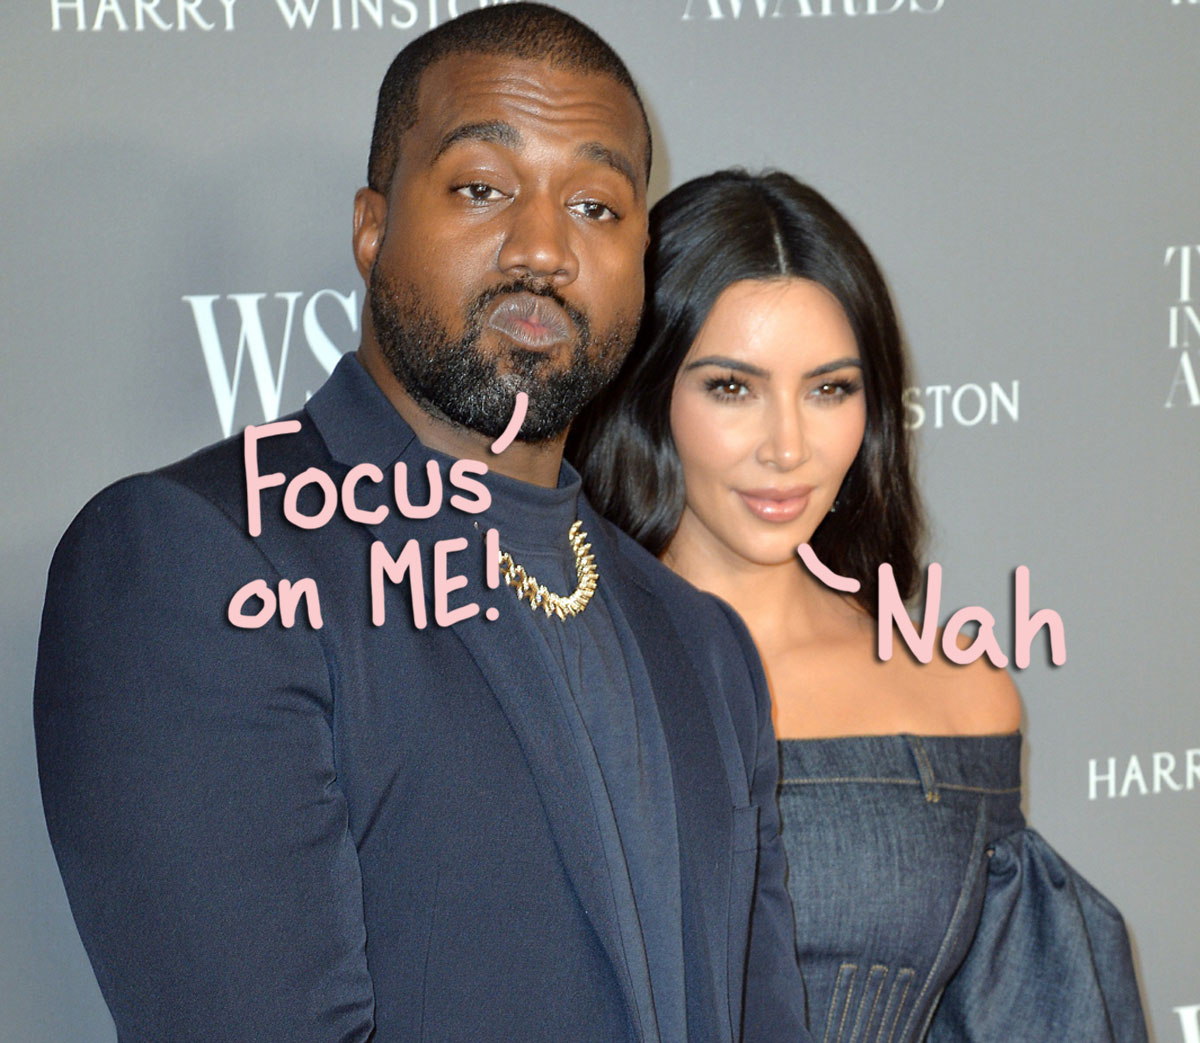 Kanye West 'Jealous' Of Kim Kardashian's Commitment 'To Prison Reform And The Kids'